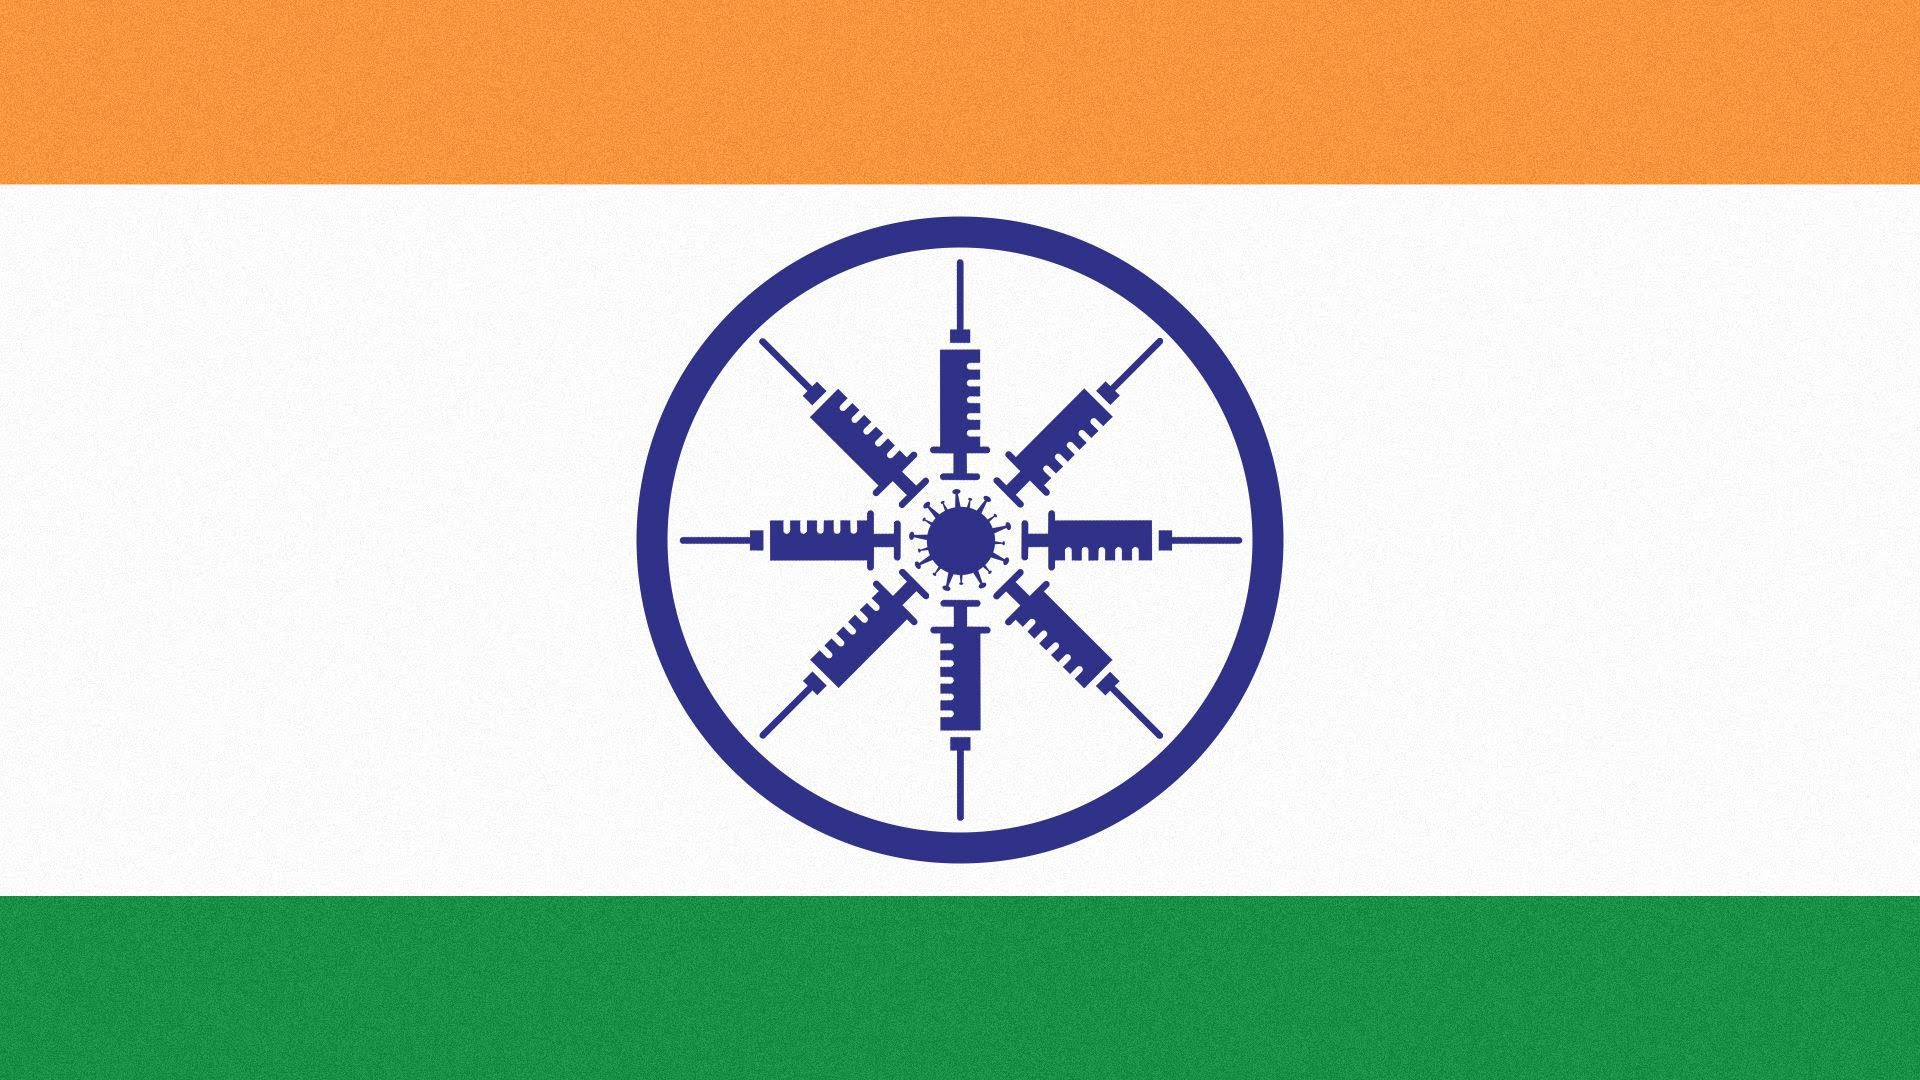 Illustration of India's flag, with syringes forming the spokes of the wheel symbol.